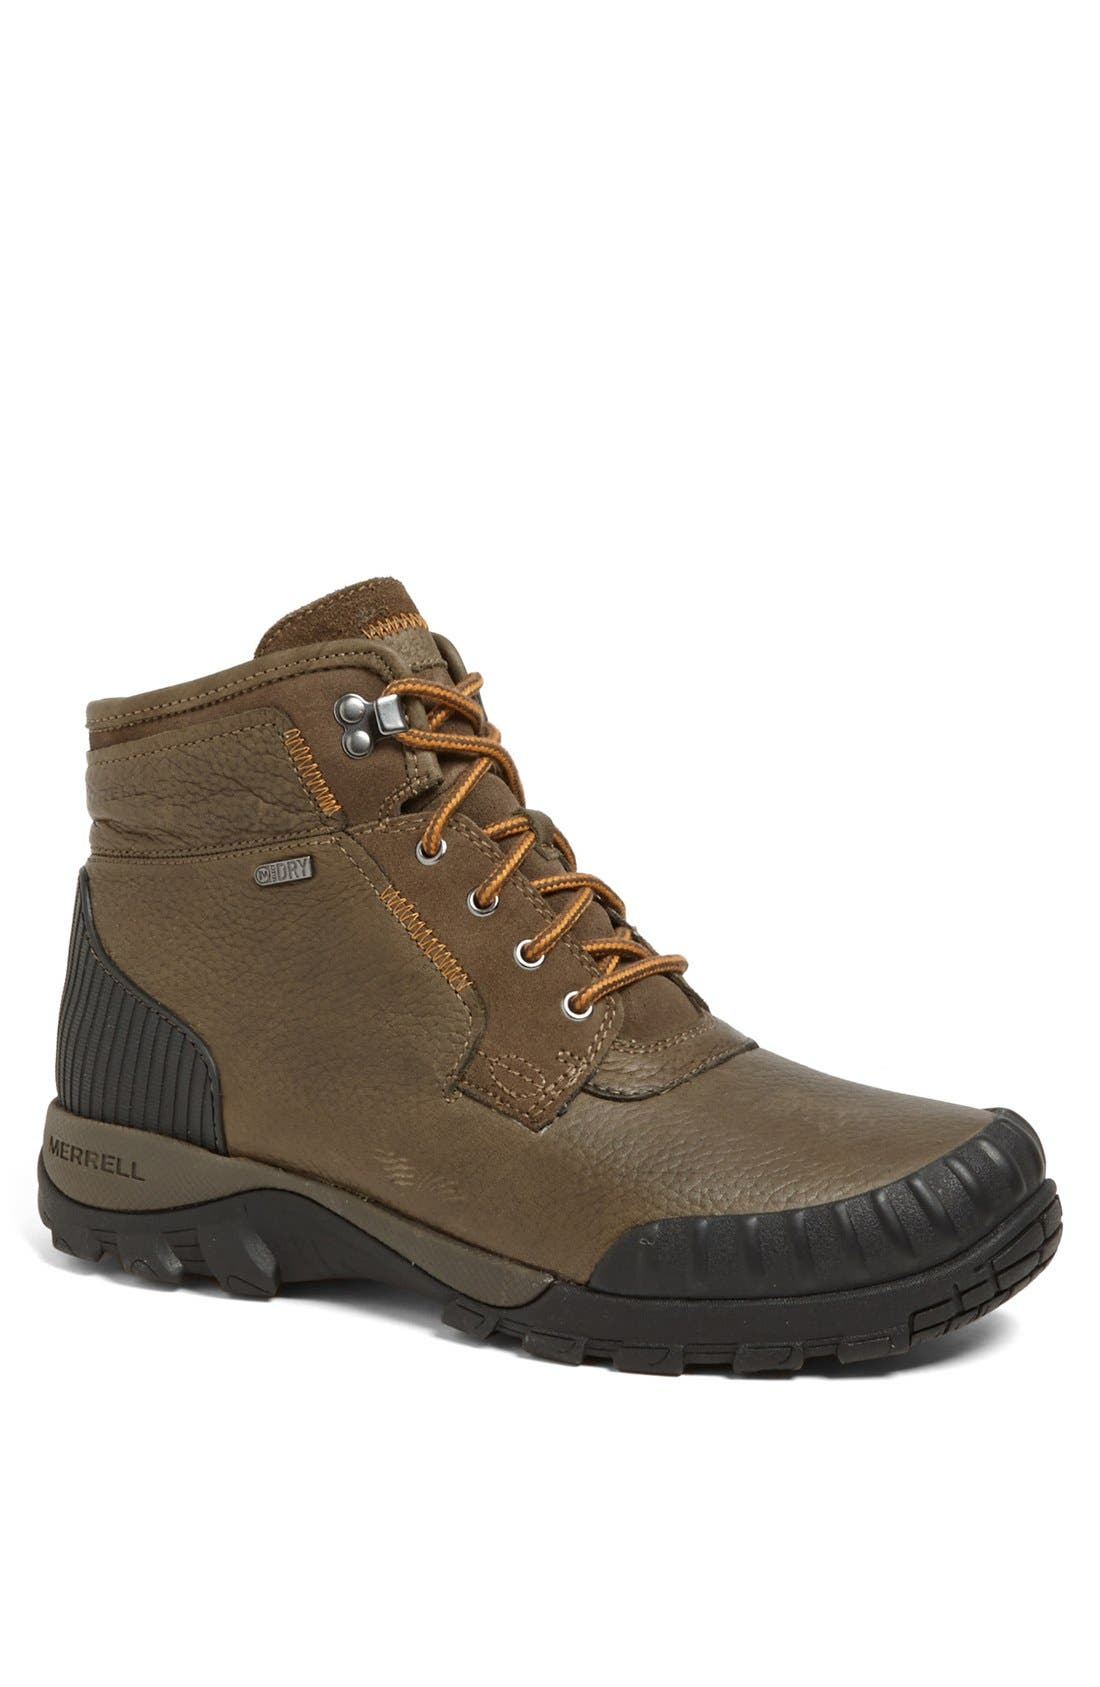 'Himavat' Waterproof Chukka Boot,                             Main thumbnail 1, color,                             200